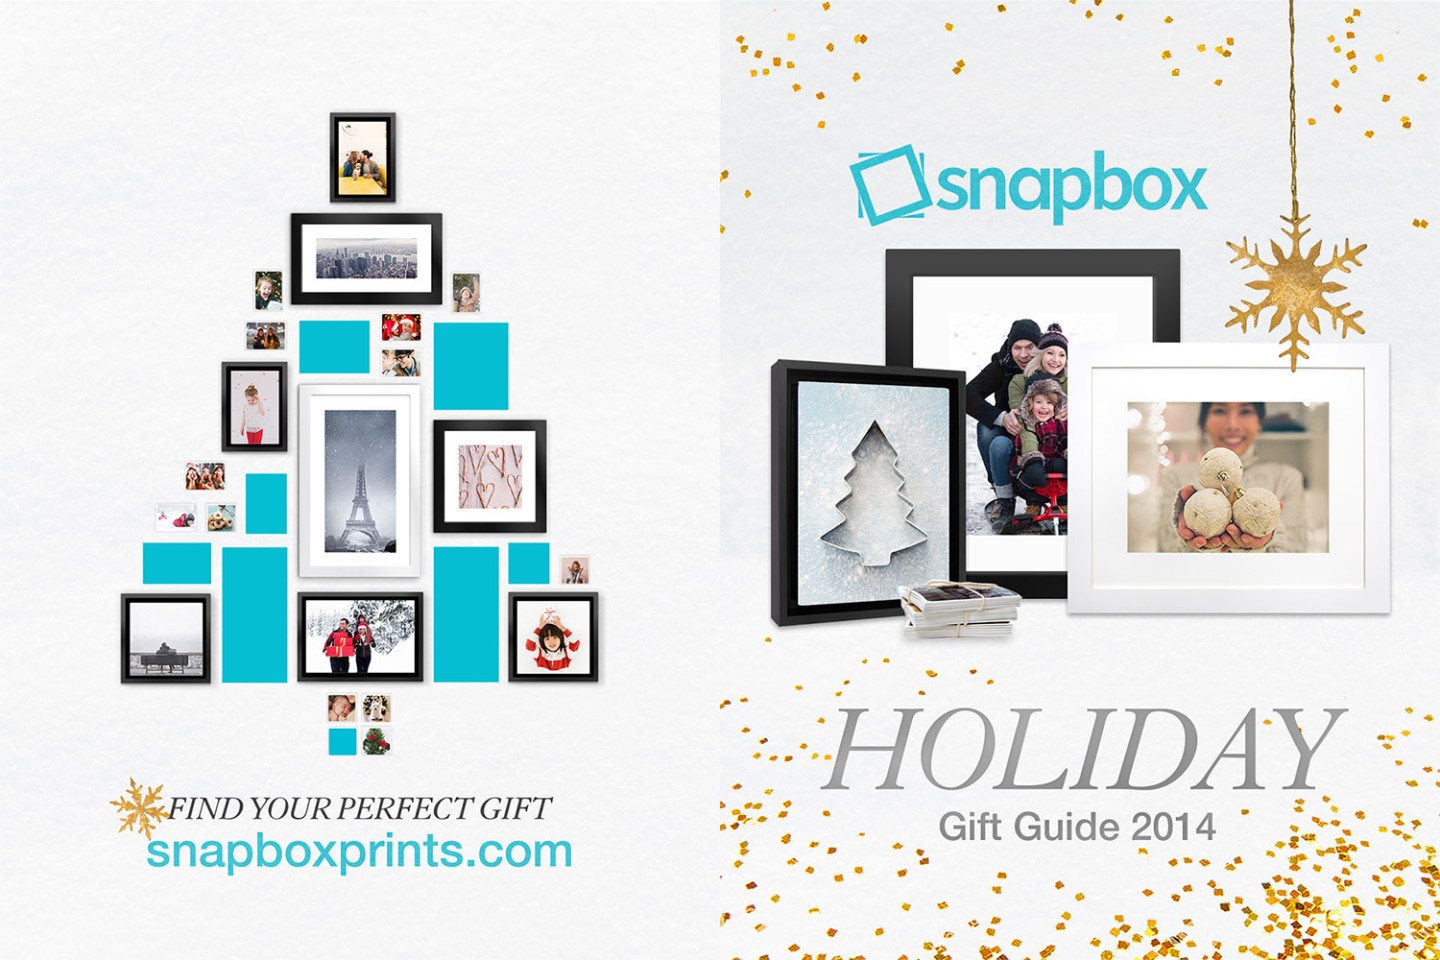 SnapBox Holiday Gift Guide 2014